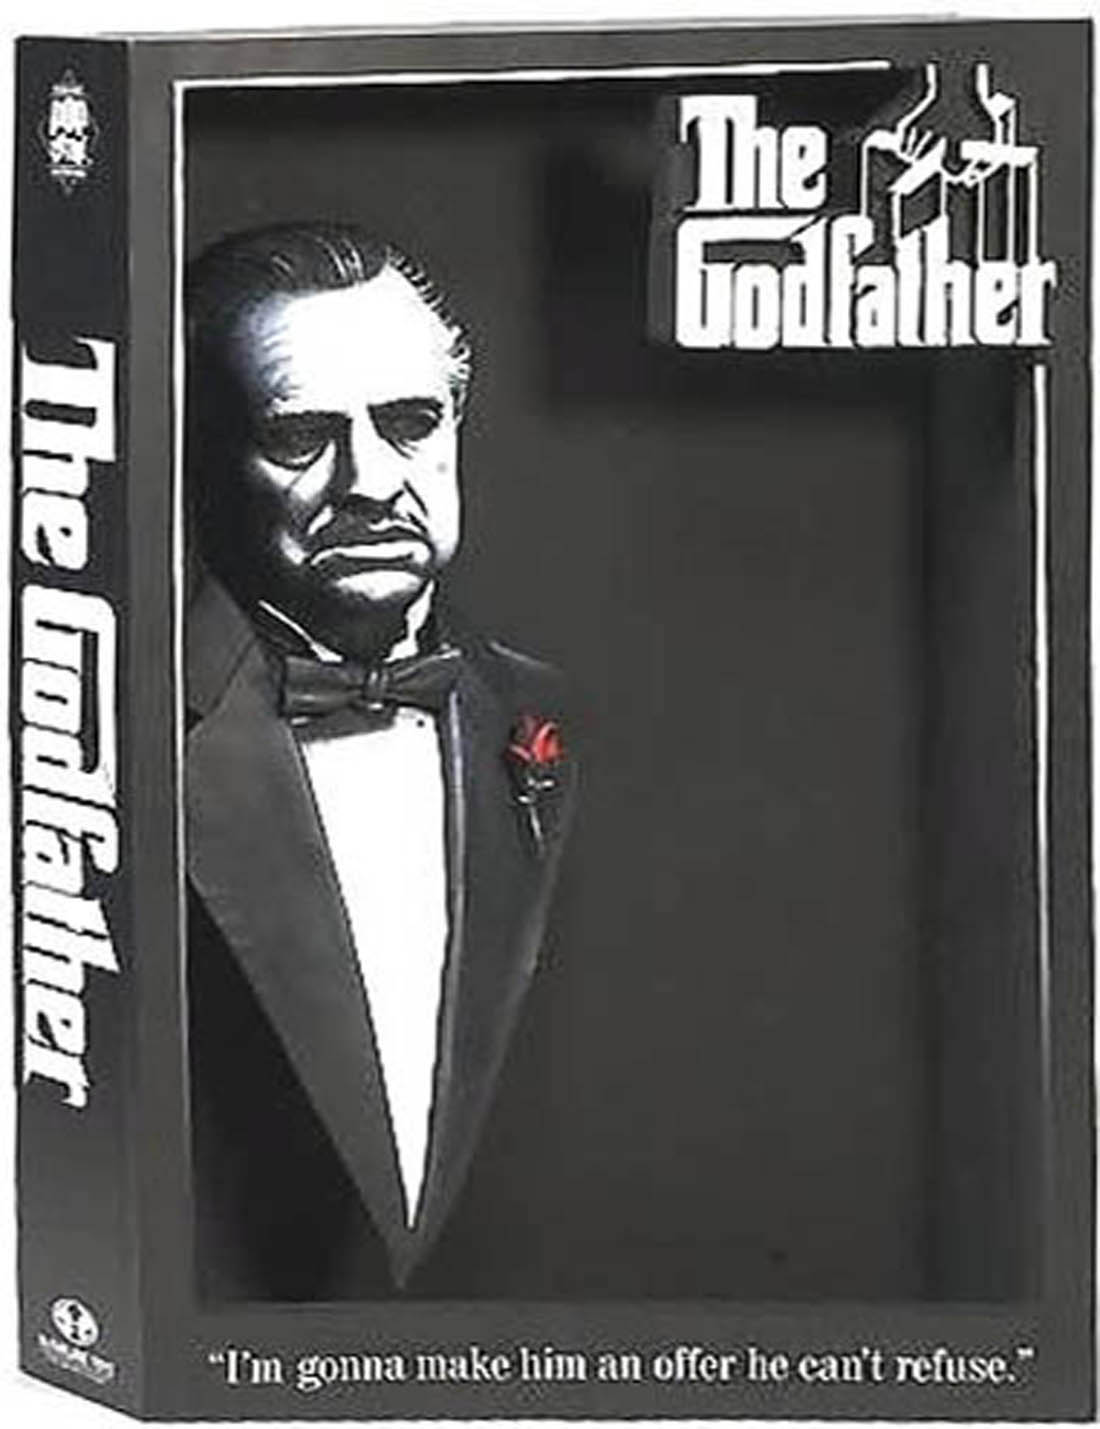 The Godfather DVD Case